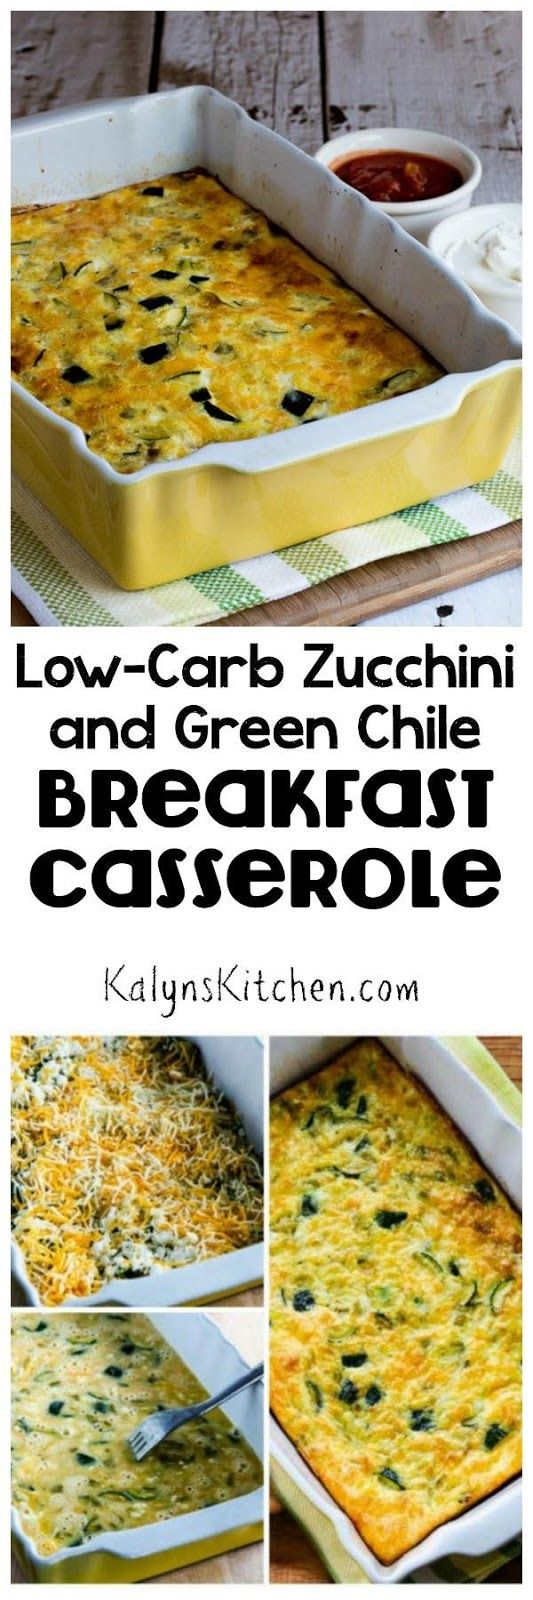 This Low-Carb Zucchini and Green Chile Breakfast Casserole is a delicious way to…